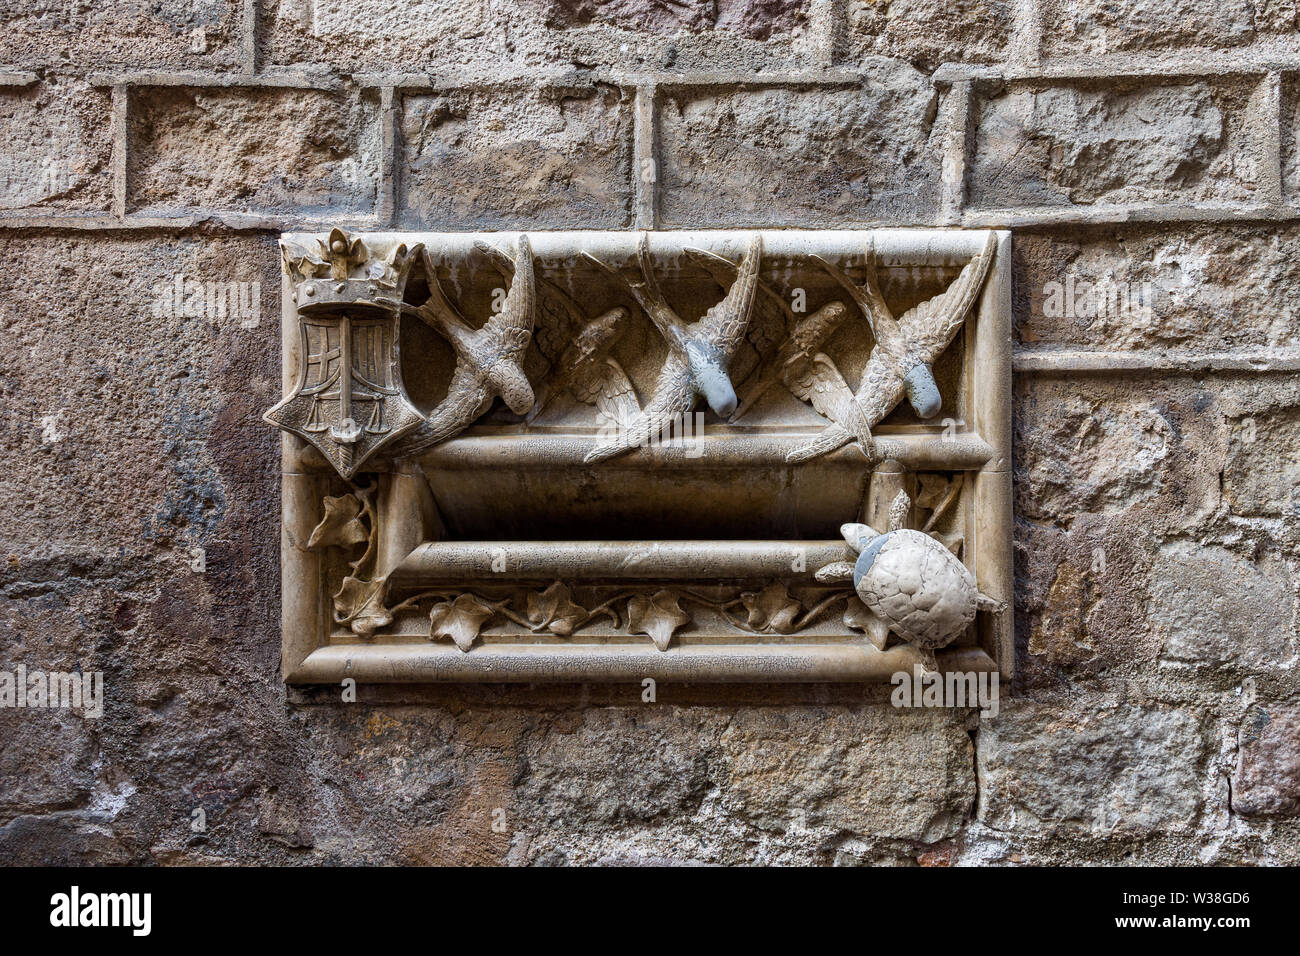 Casa de l'Ardiaca, stone letterbox with swallows and turtles, Lluis Domenech i Montaner. Barri Gotic, Barcelona. Spain. - Stock Image